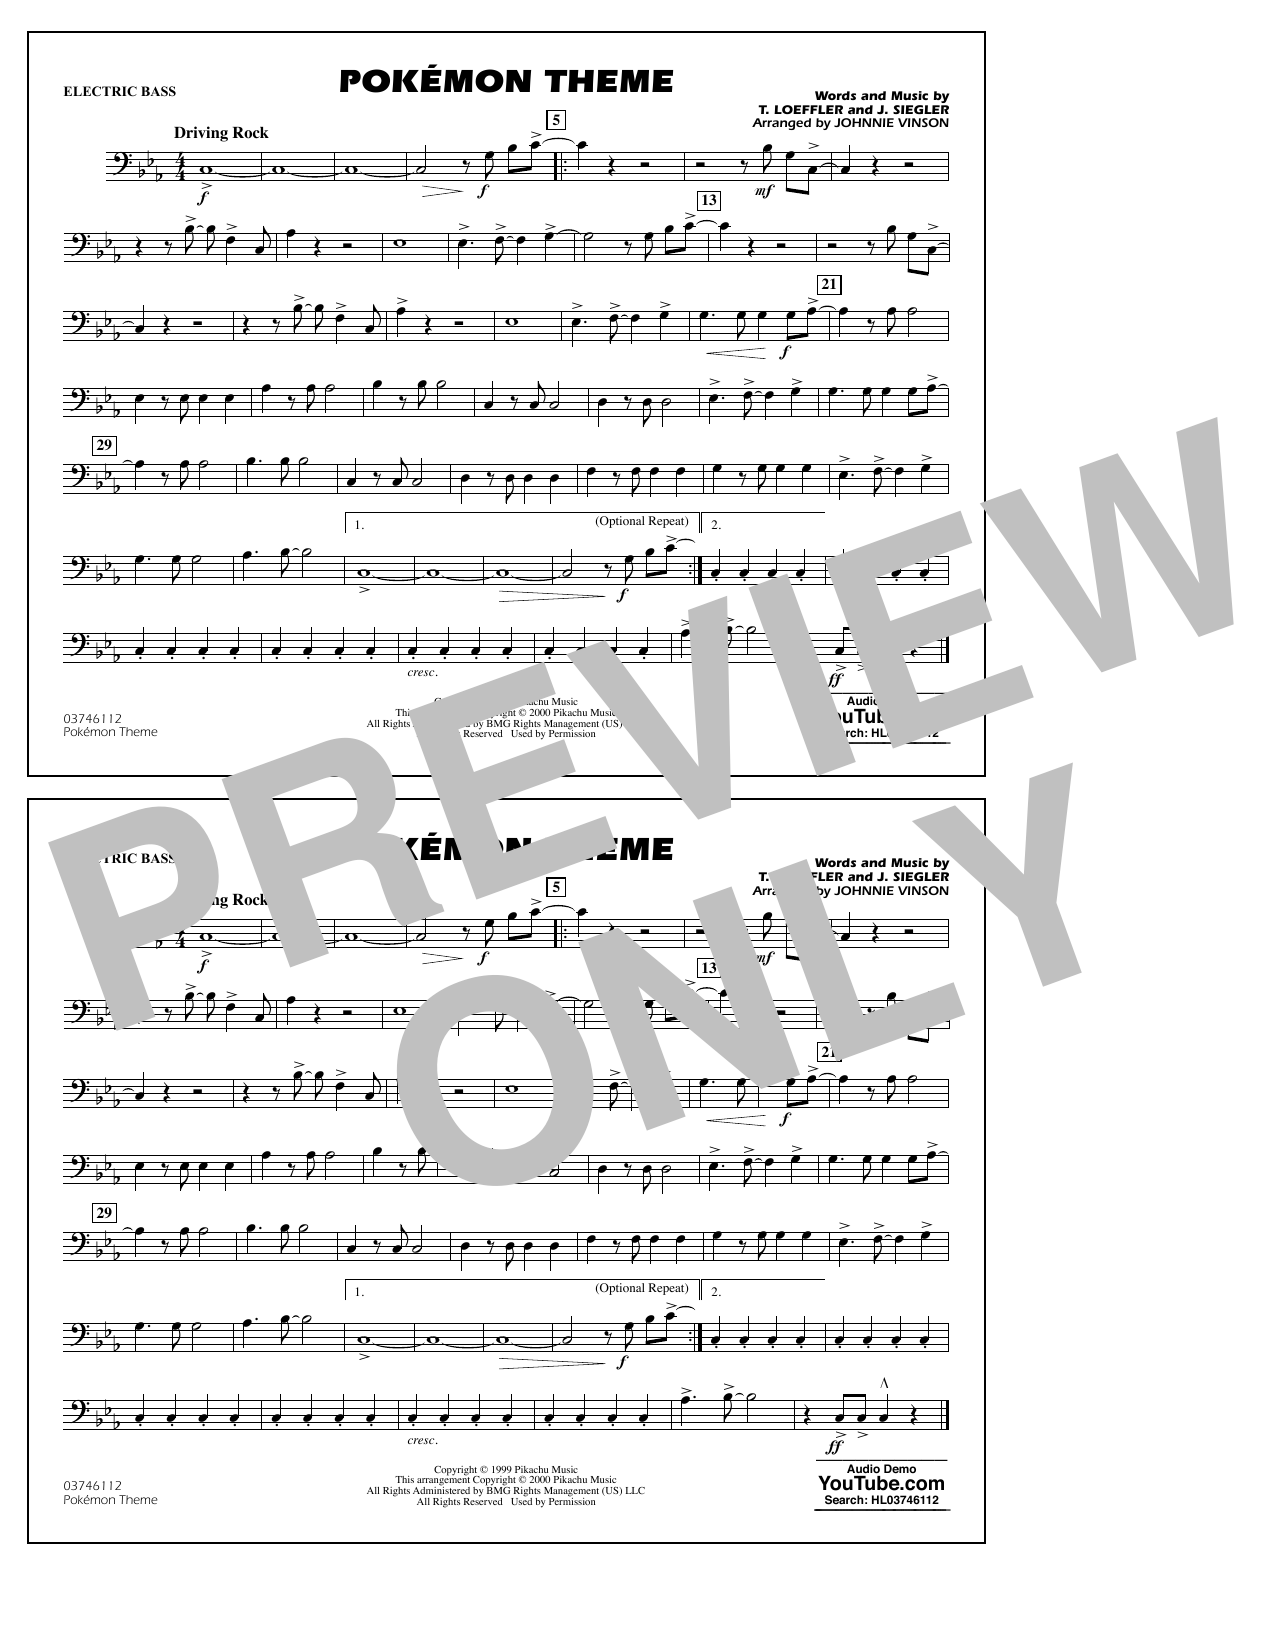 Pokémon Theme - Electric Bass Sheet Music